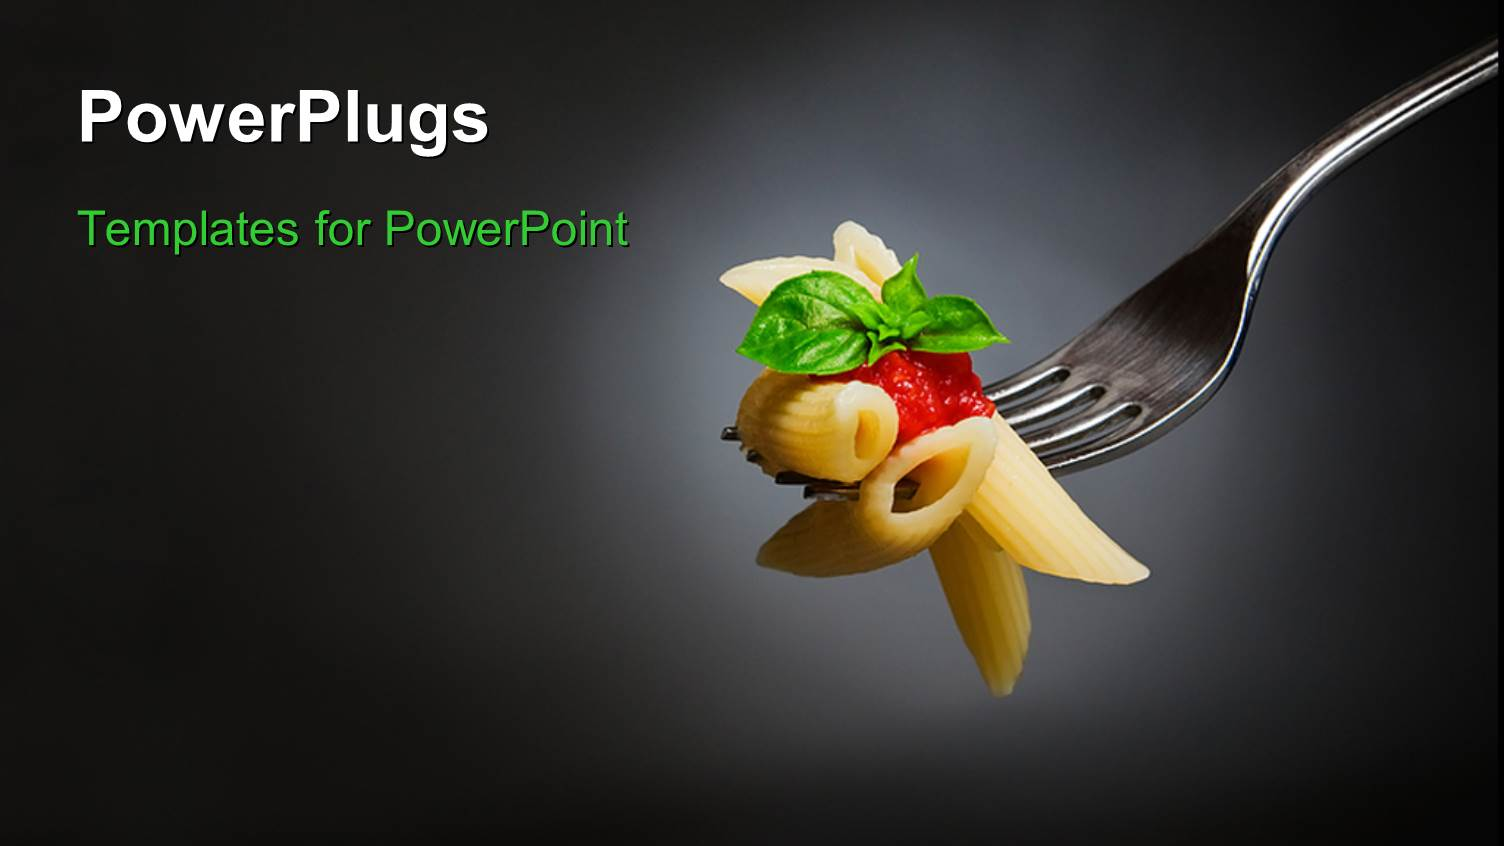 powerpoint template: macaroni pasta with tomato and basil on fork, Modern powerpoint